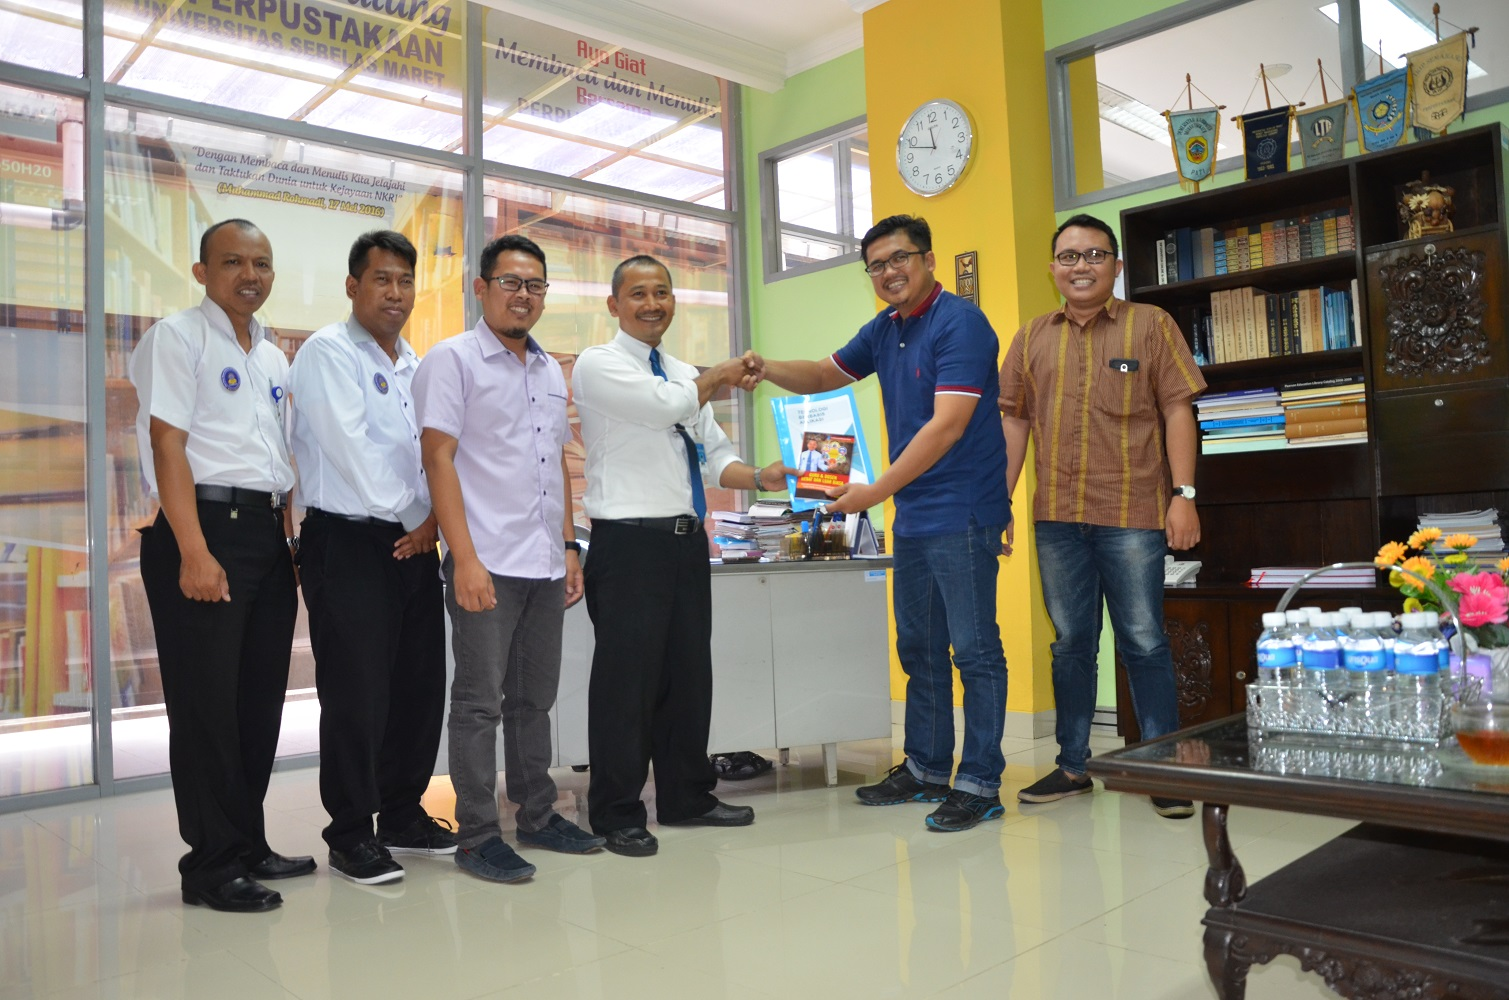 UNS Library Cooperates with Smartbook Pustaka Digital Surakarta